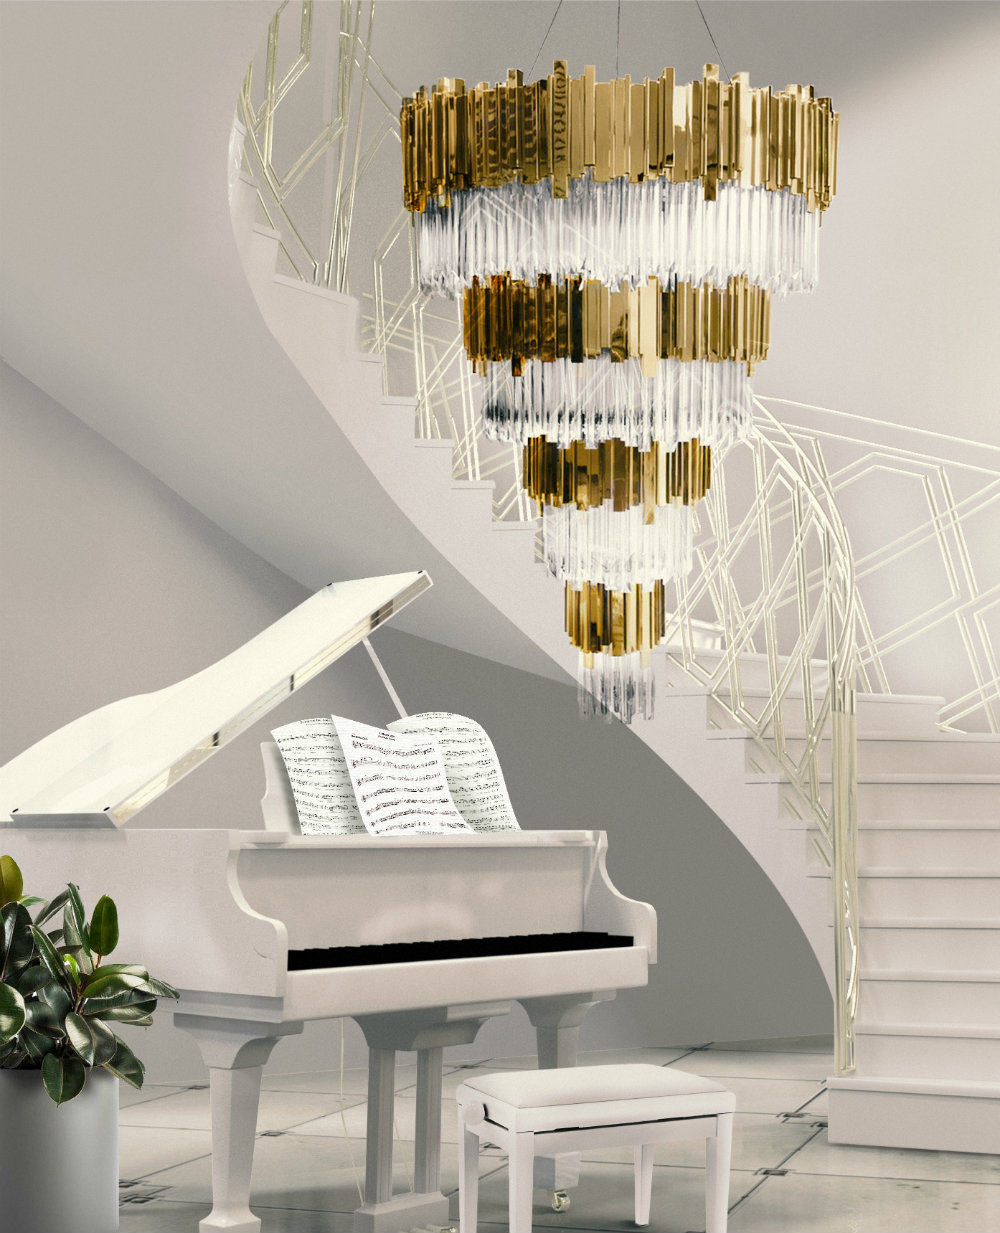 6 Luxurious Stairwell Designs You'll Love salone del mobile milano Milan Design Guide: Top Exhibitors at Salone del Mobile Milano 6 Luxurious Stairwell Designs Youll Love 01 salone del mobile milano Milan Design Guide: Top Exhibitors at Salone del Mobile Milano 6 Luxurious Stairwell Designs Youll Love 01